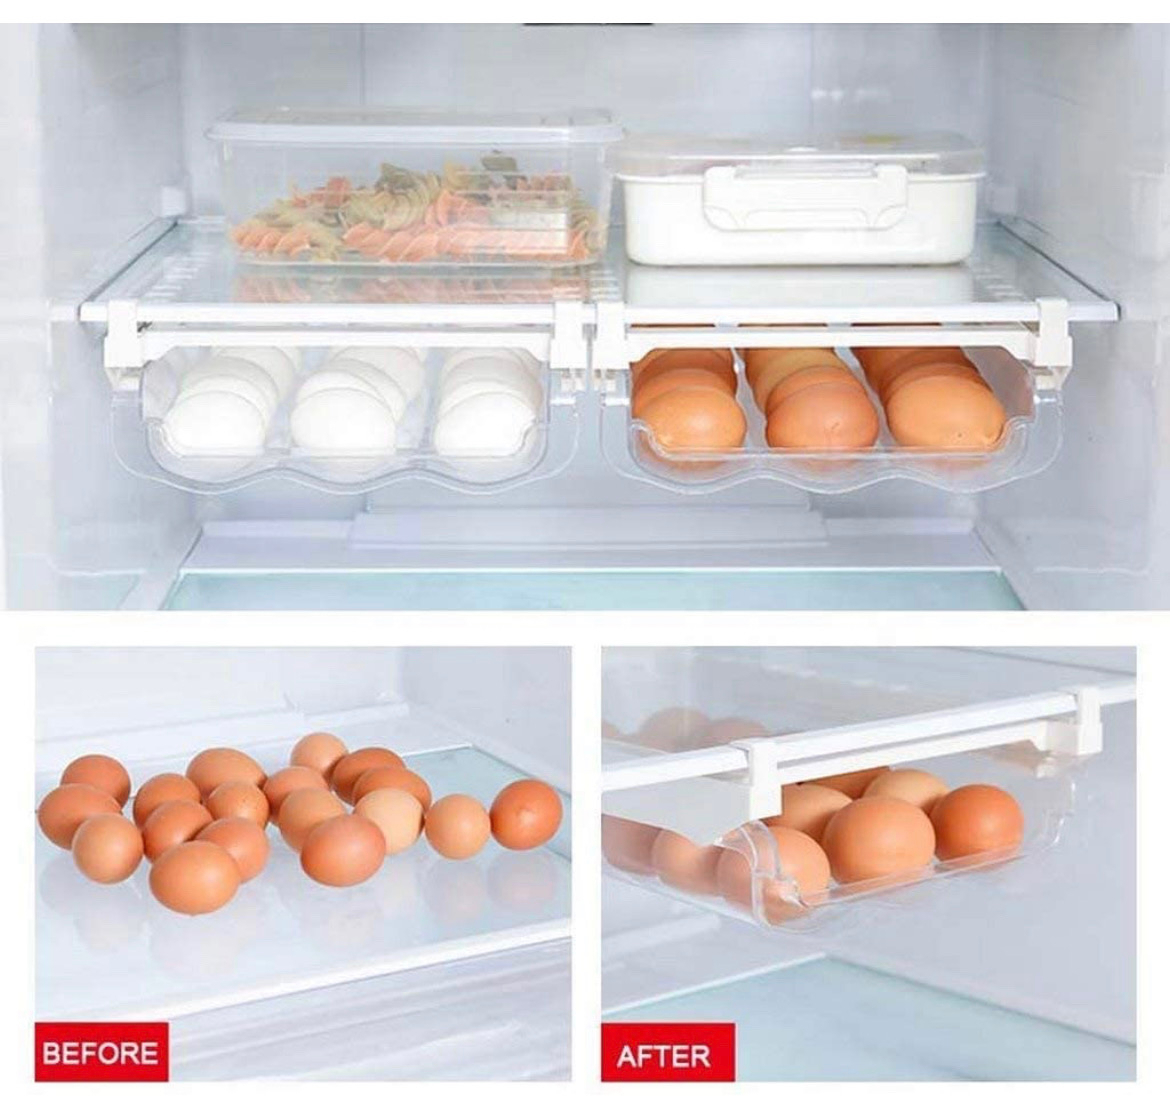 Before and after scene. Before has a pile of eggs on the bottom of the fridge. After has an egg rack.